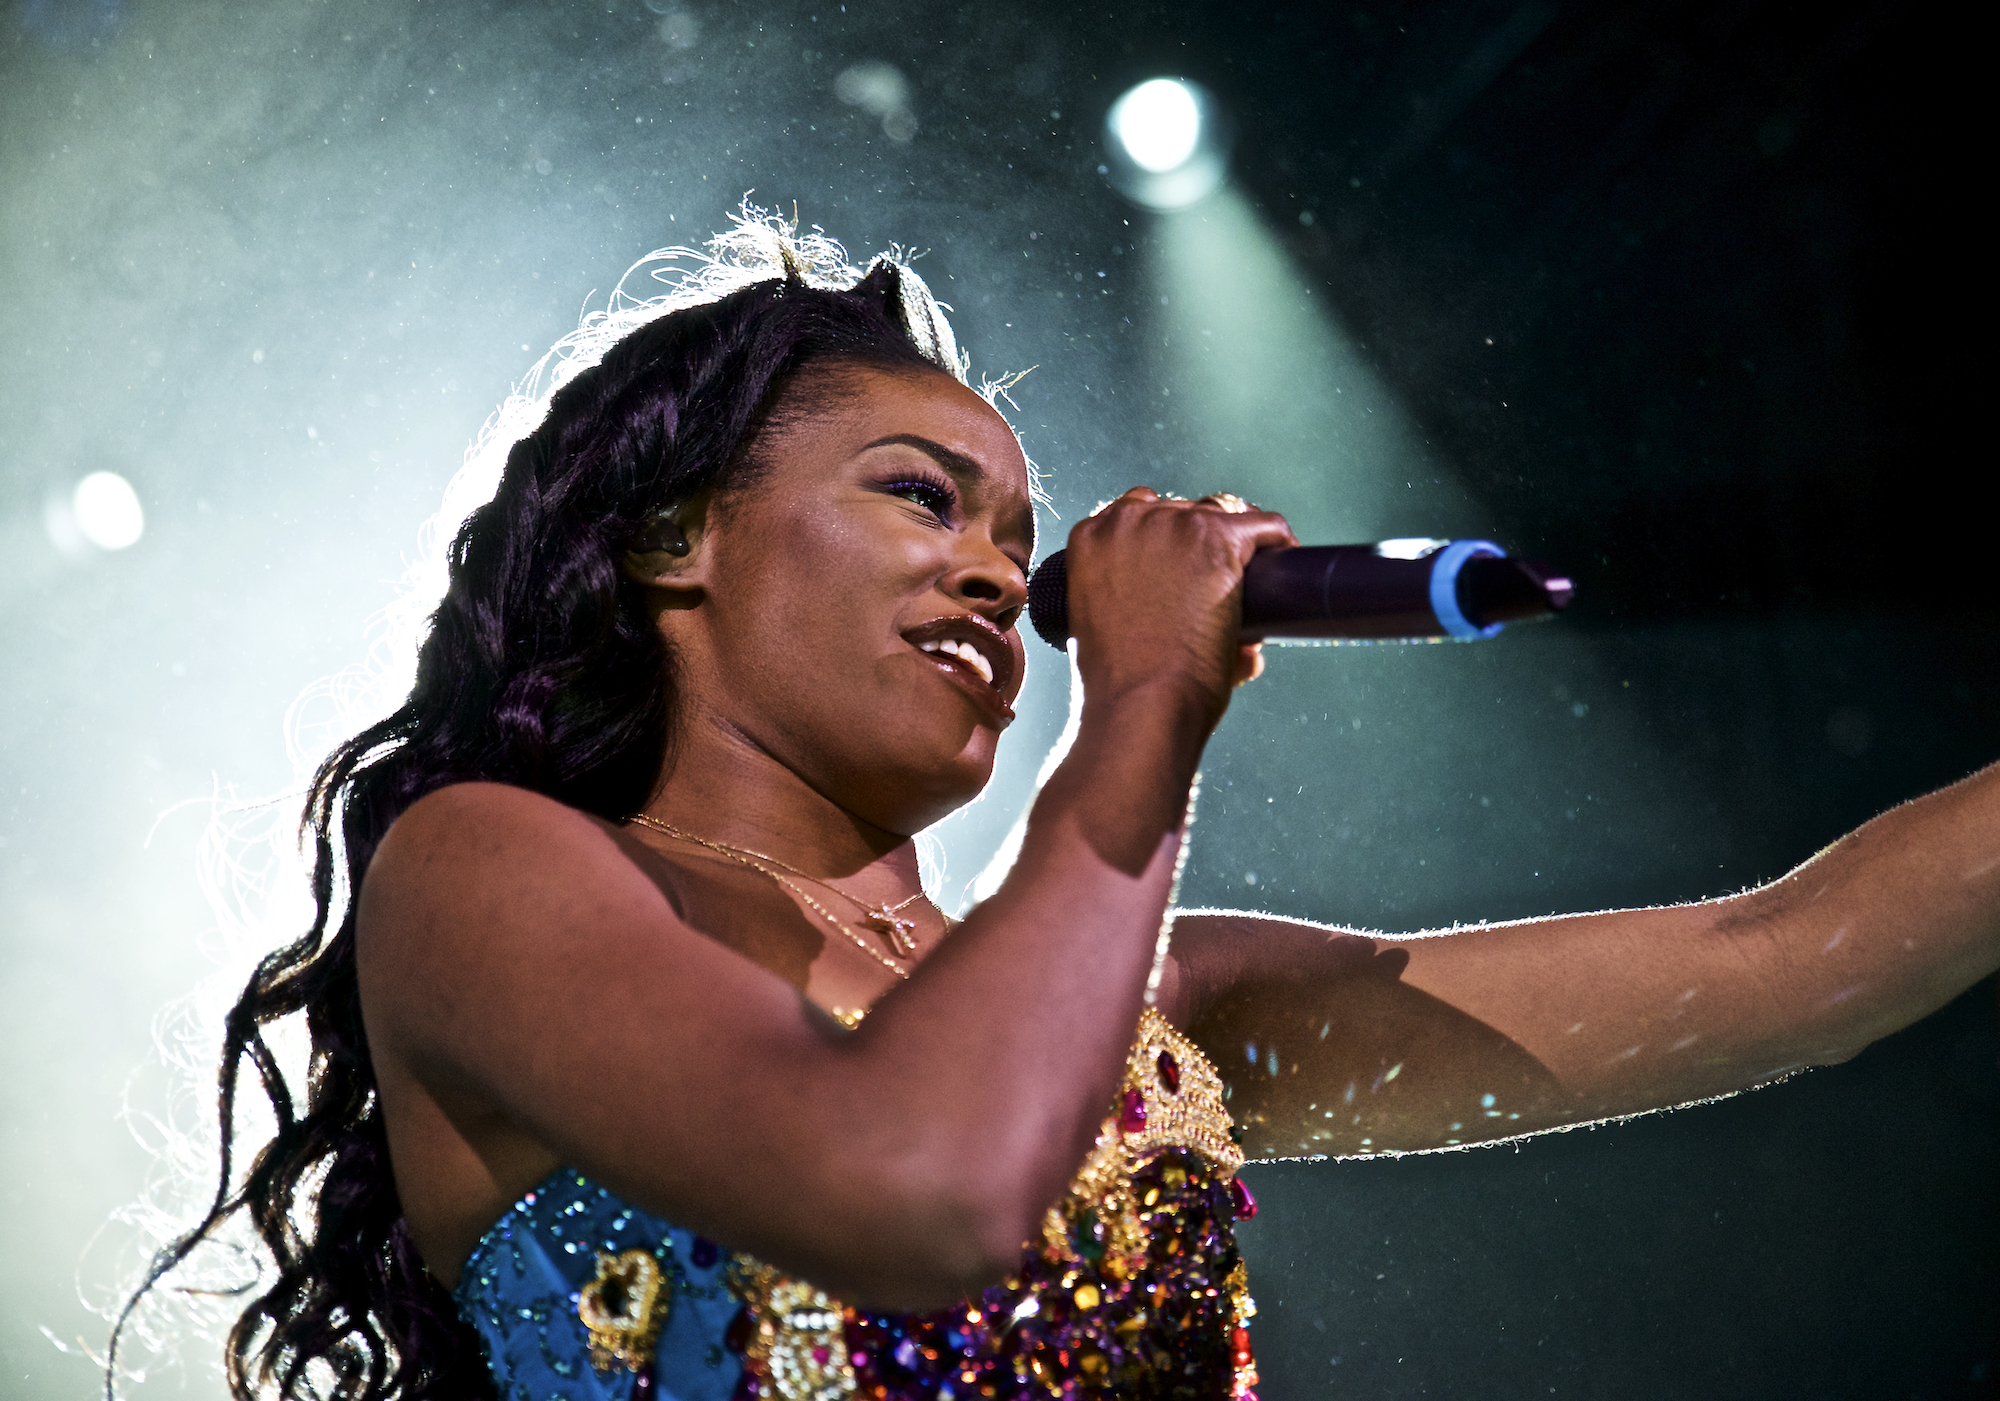 Azealia Banks In Concert - New York